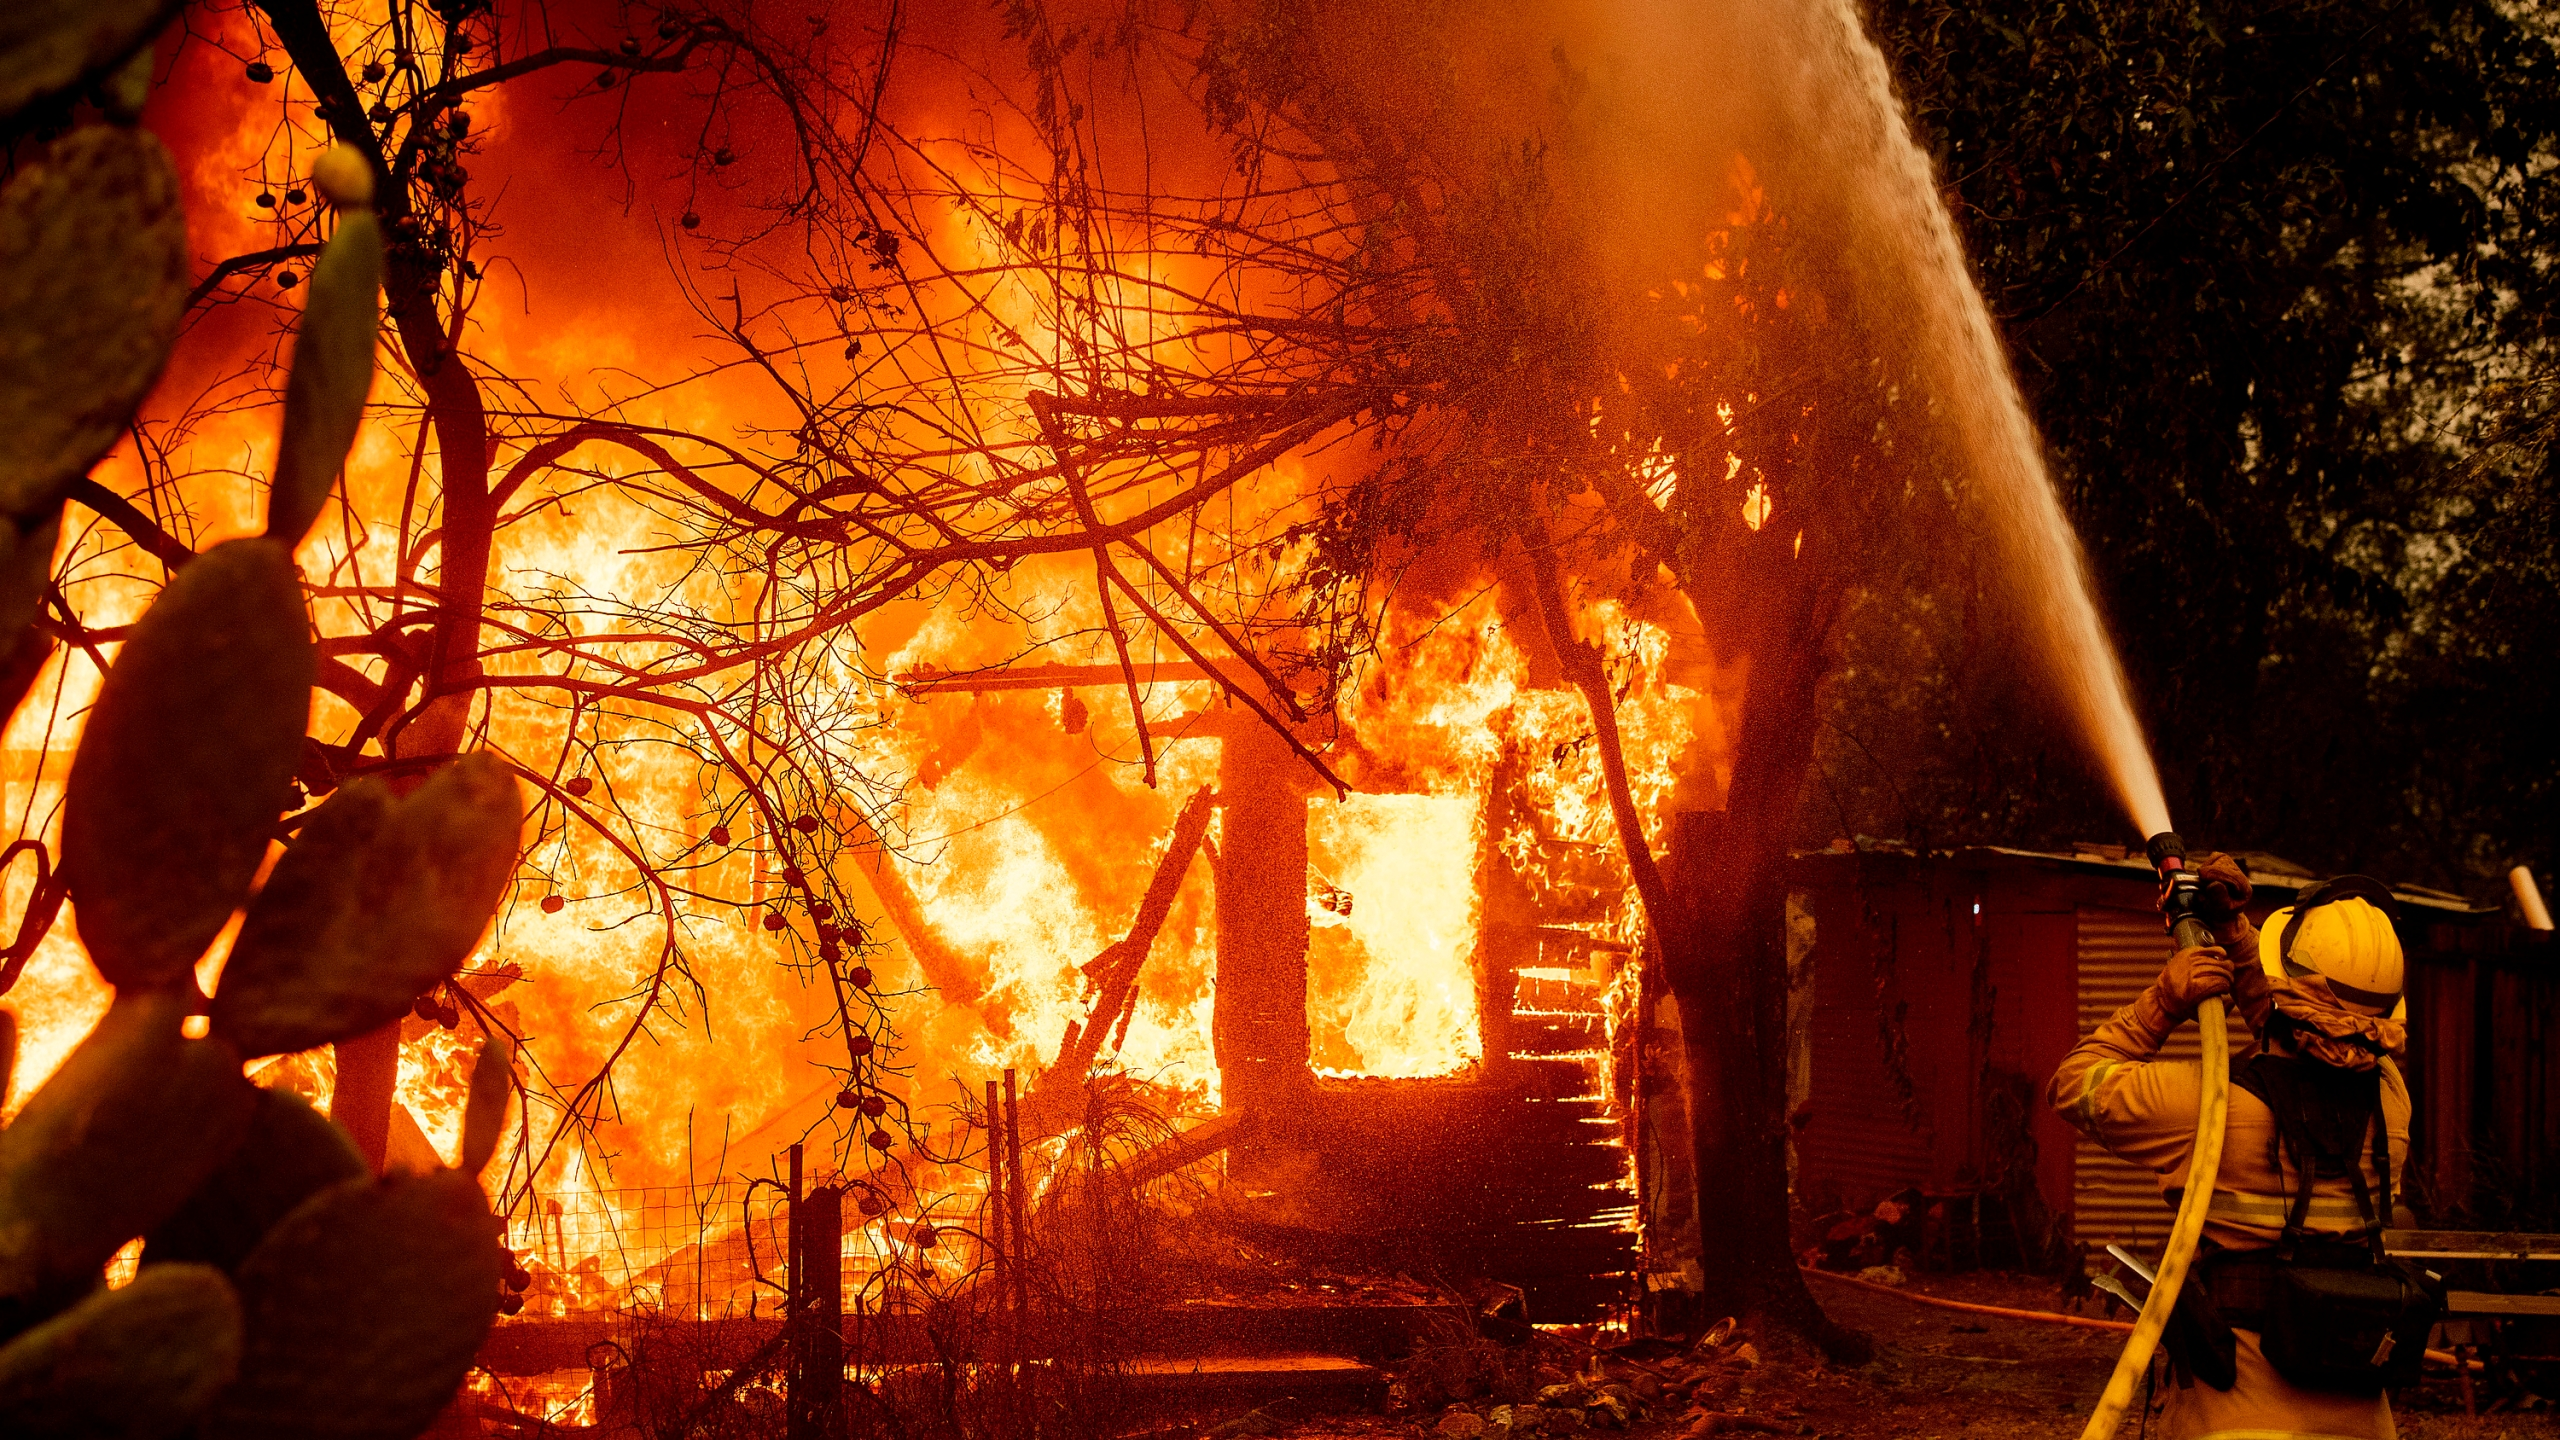 In this Oct. 24, 2019, file photo, a firefighter sprays water on a burning home as the Kincade Fire burns through the Jimtown community of unincorporated Sonoma County, Calif. Fire officials say Pacific Gas & Electric transmission lines sparked a wildfire last year in Northern California that destroyed hundreds of homes and led to the evacuation of nearly 100,000 people. The California Department of Forestry and Fire Protection issued the finding Thursday, July 16, 2020. (AP Photo/Noah Berger, File)